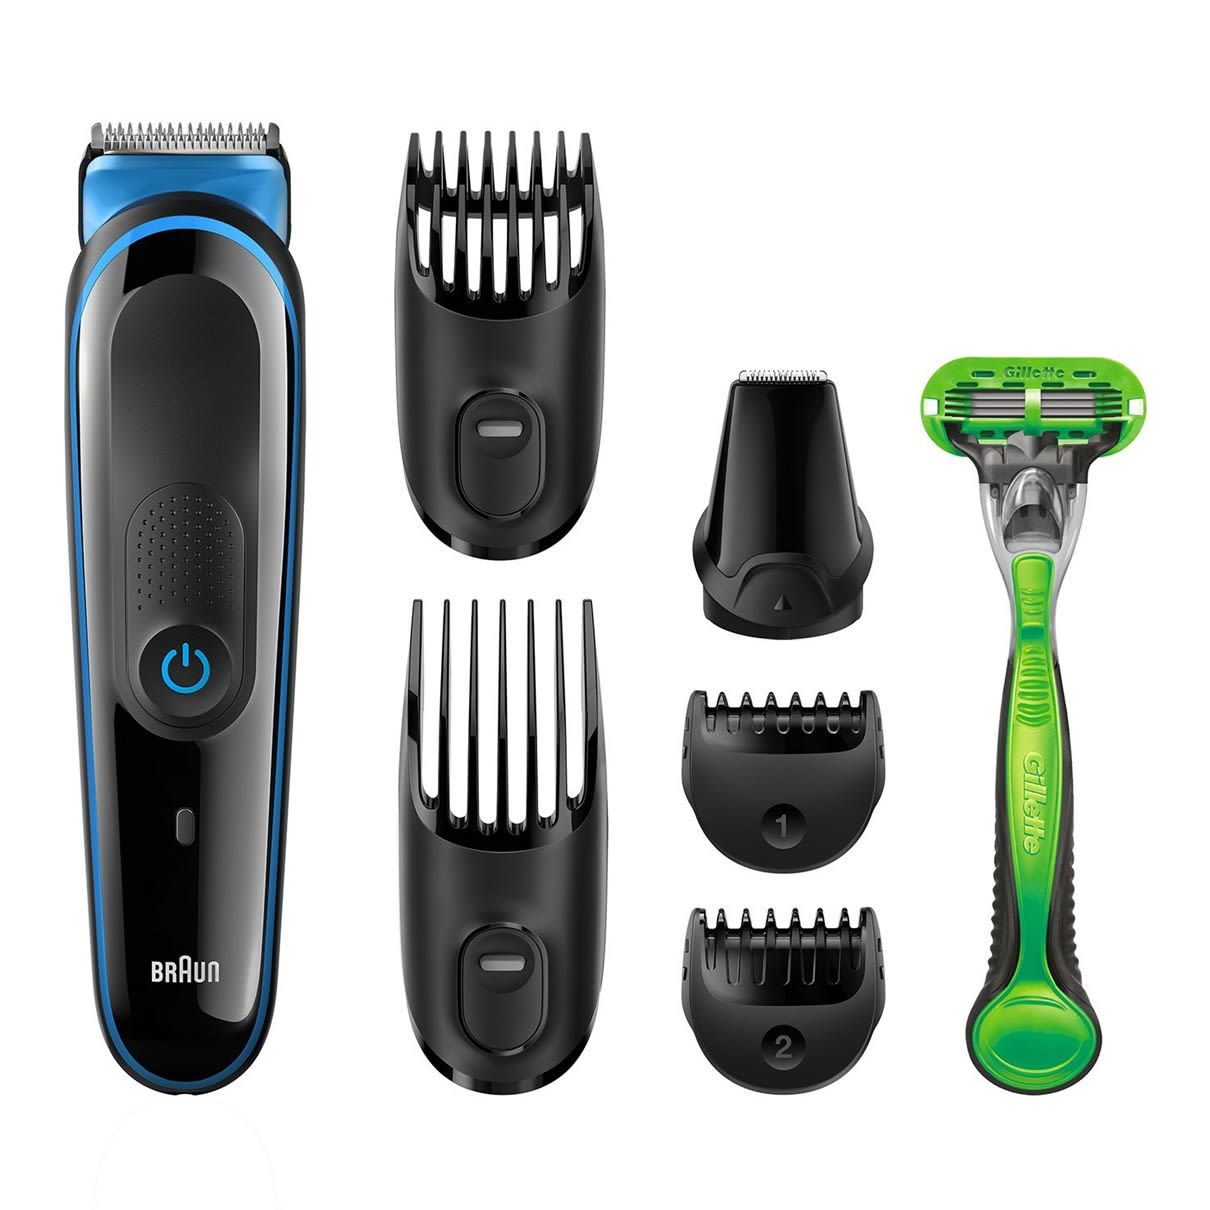 Braun multi grooming kit MGK3040 what´s in the box